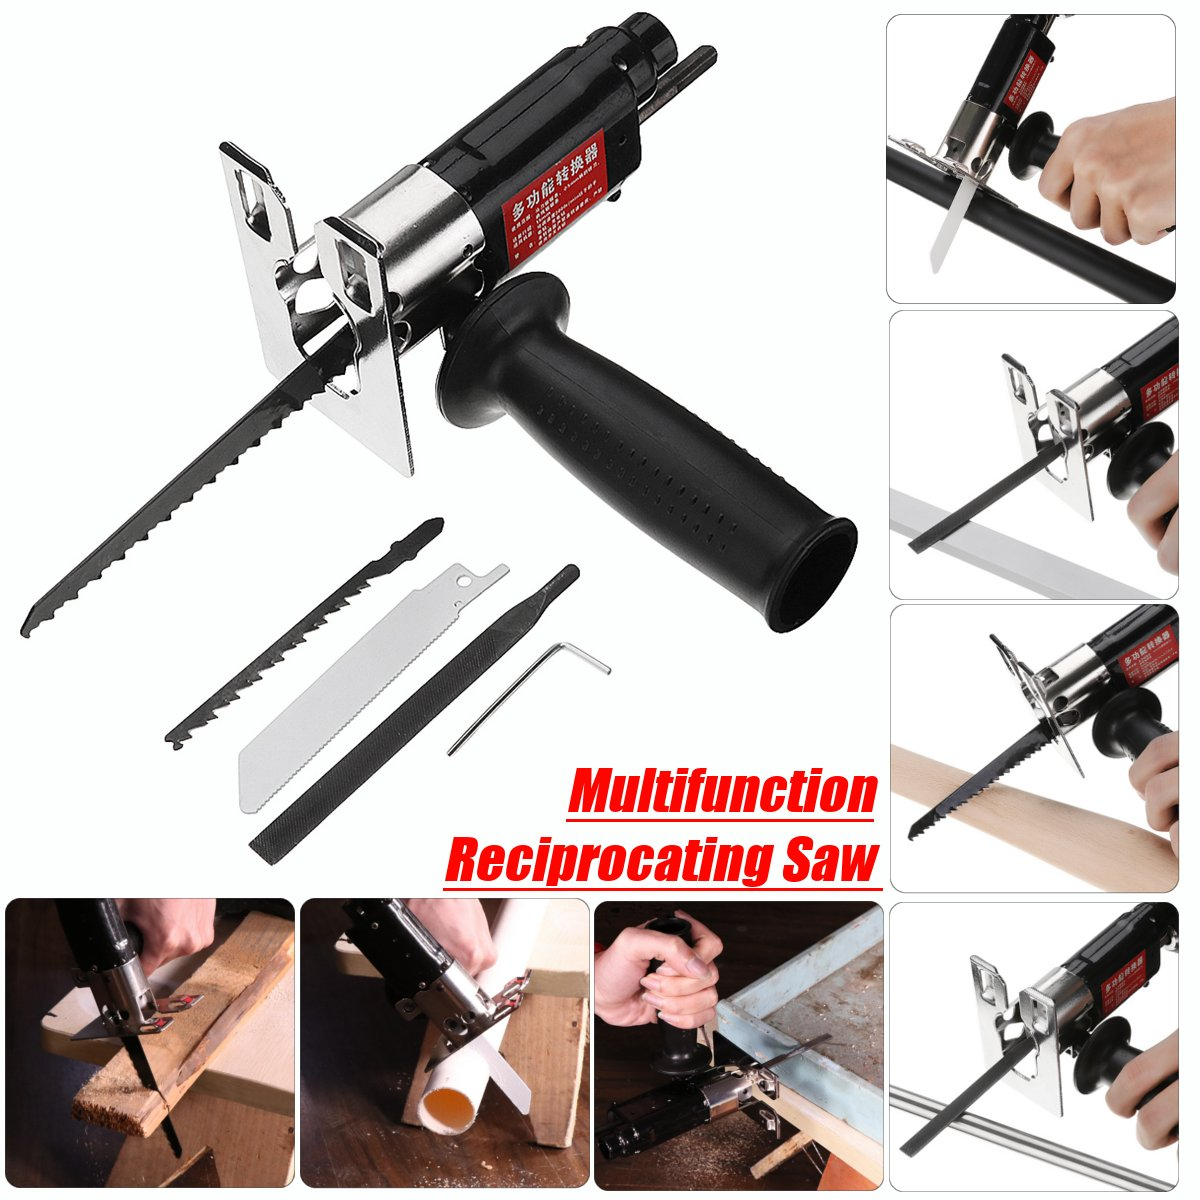 Image 2 - Multifunction Reciprocating Saw Attachment Change Electric Drill into Reciprocating Saw Jig Metal File for Wood Metal Cutting-in Electric Saws from Tools on